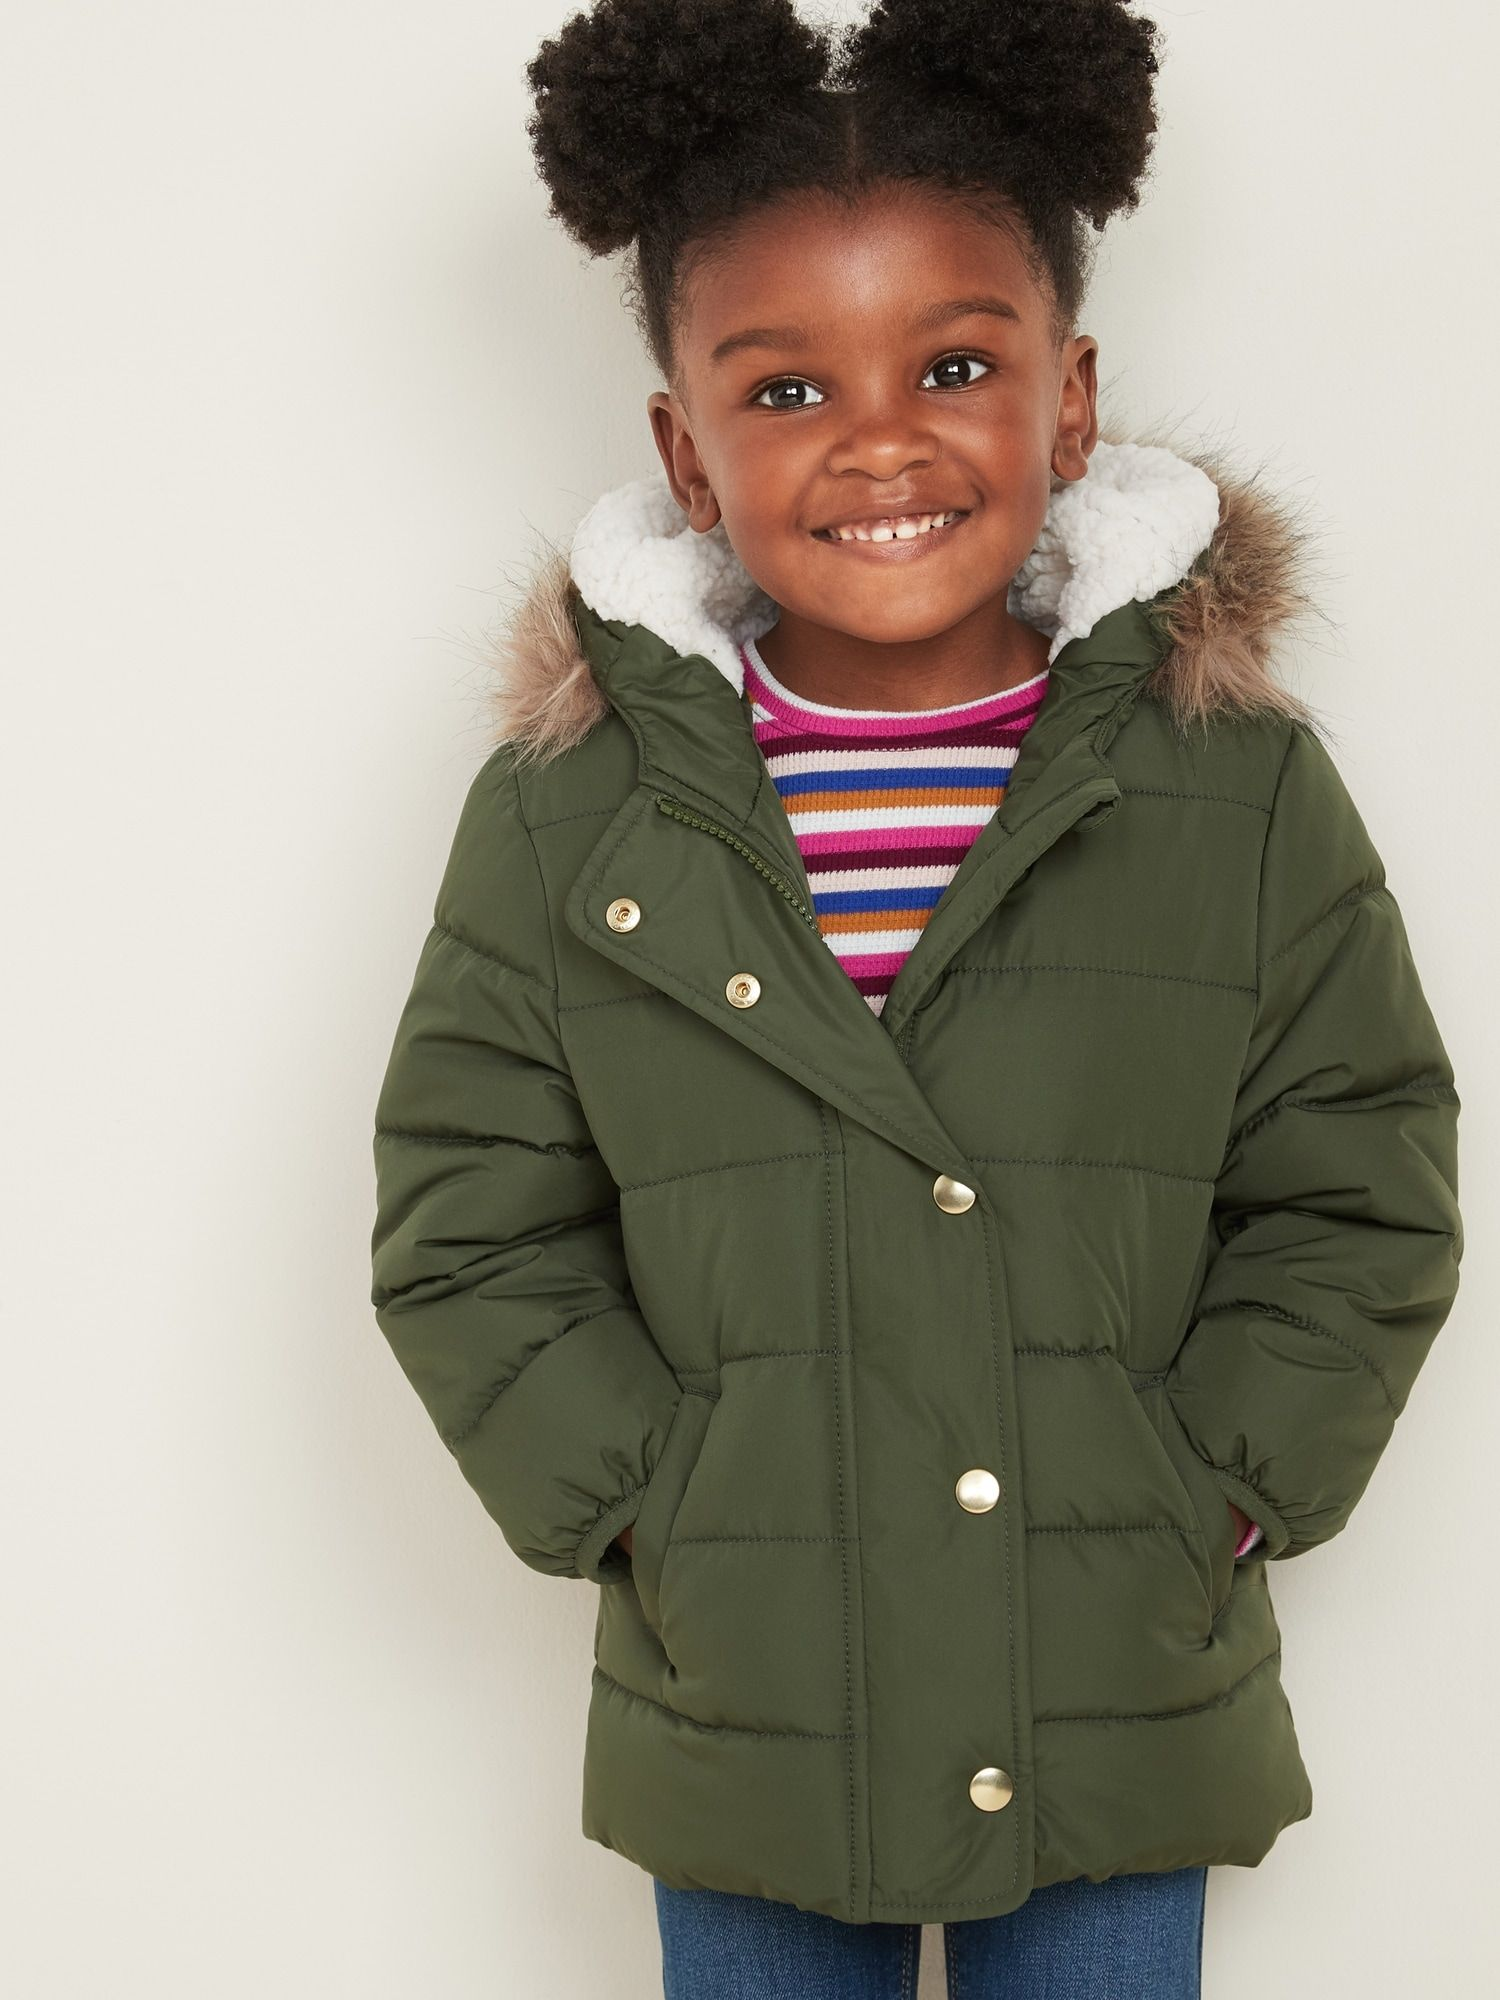 Frost Free Long Puffer Jacket For Toddler Girls Old Navy Toddler Girl Jackets Kids Clothes Online Shopping Toddler Girl Outfits [ 2000 x 1500 Pixel ]